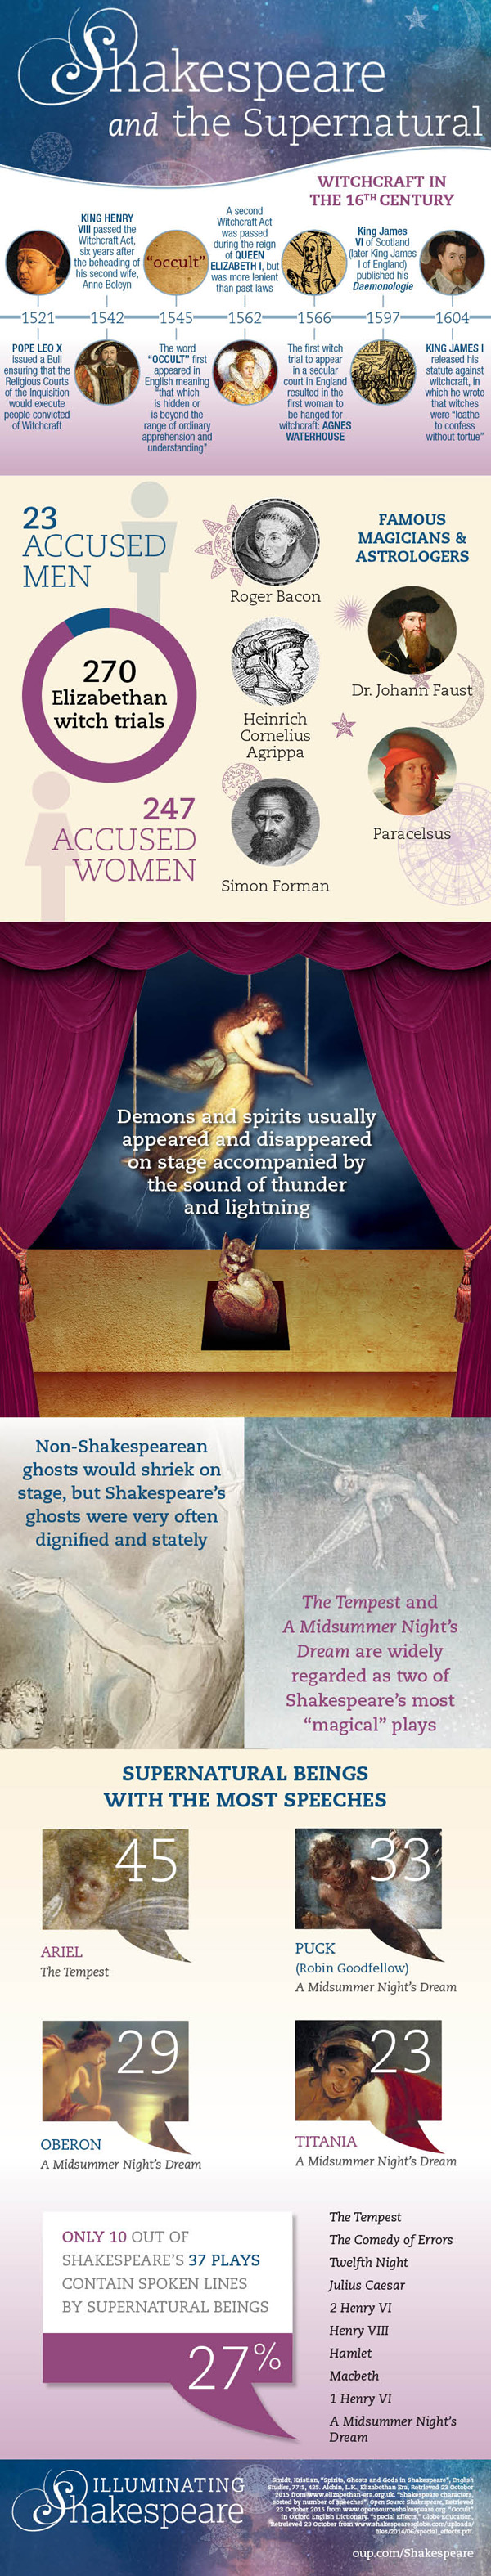 Shakespeare's fascination with the supernatural.